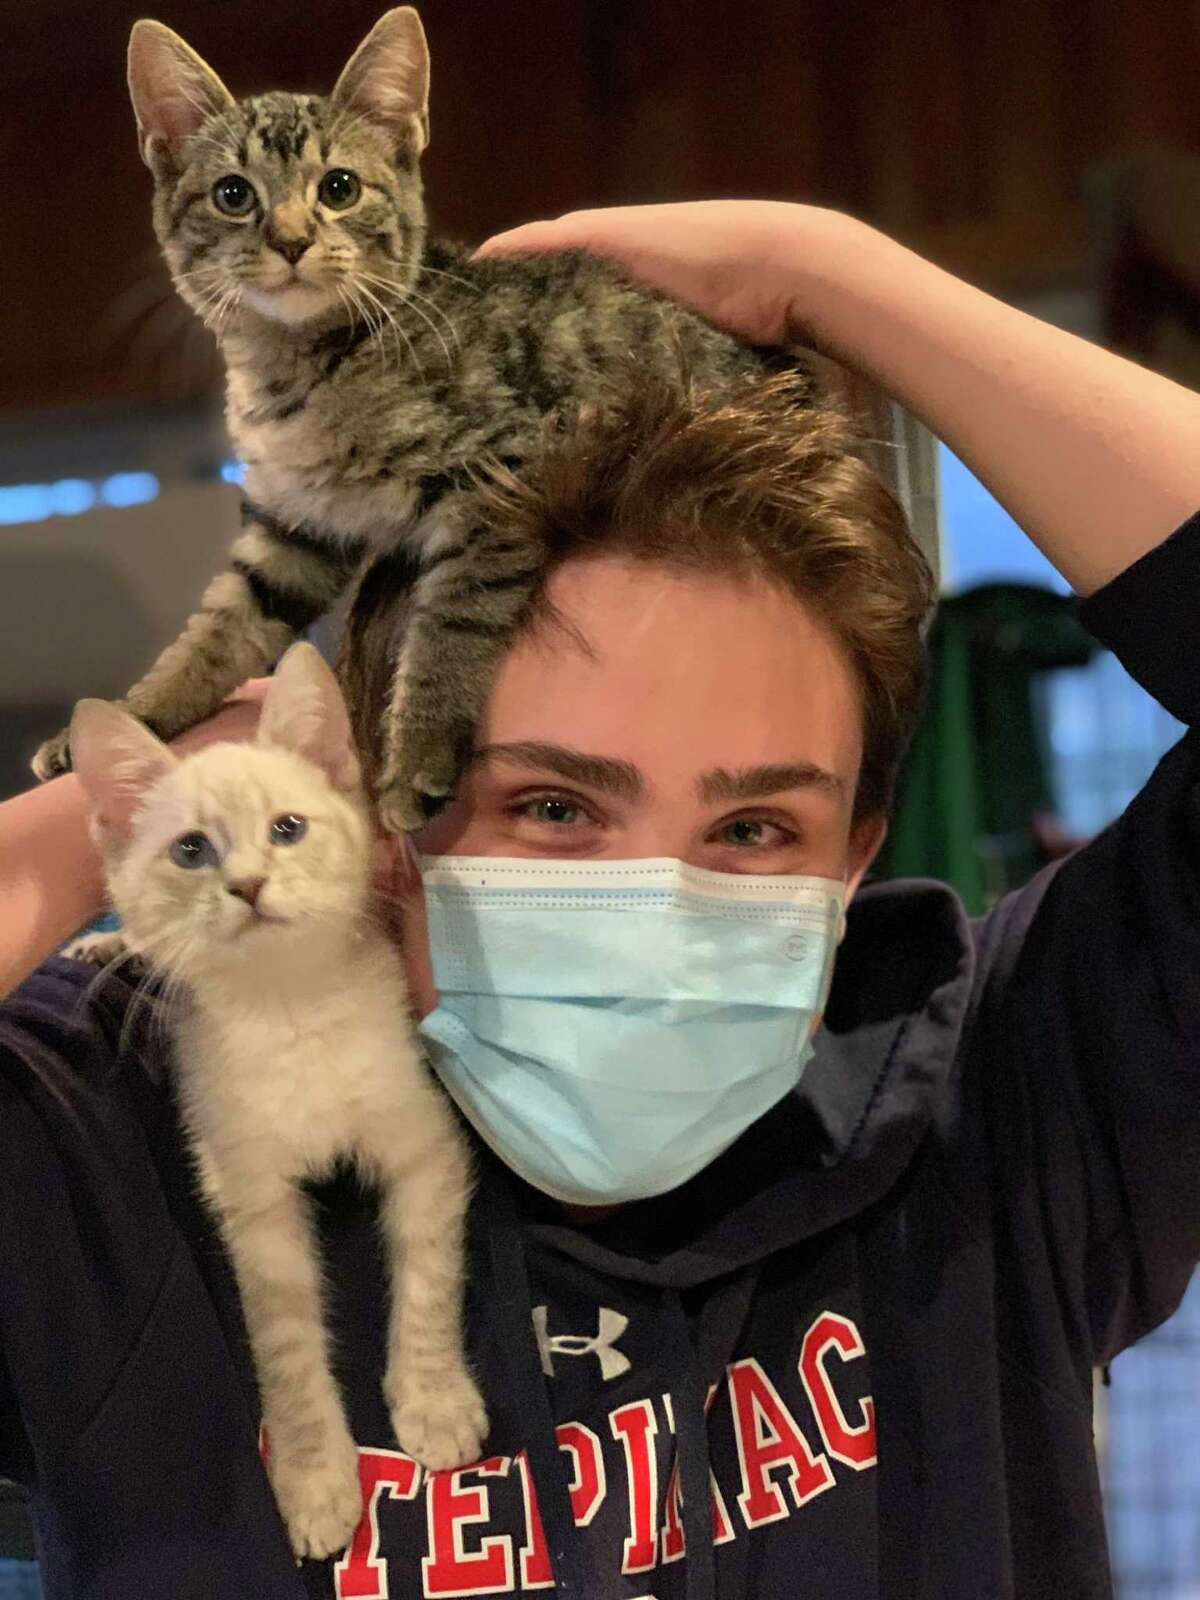 Anthony Raduazzo loves cats, and they seem to love him. He helps transport them from shelters that often euthanize them to shelters dedicated find them homes.